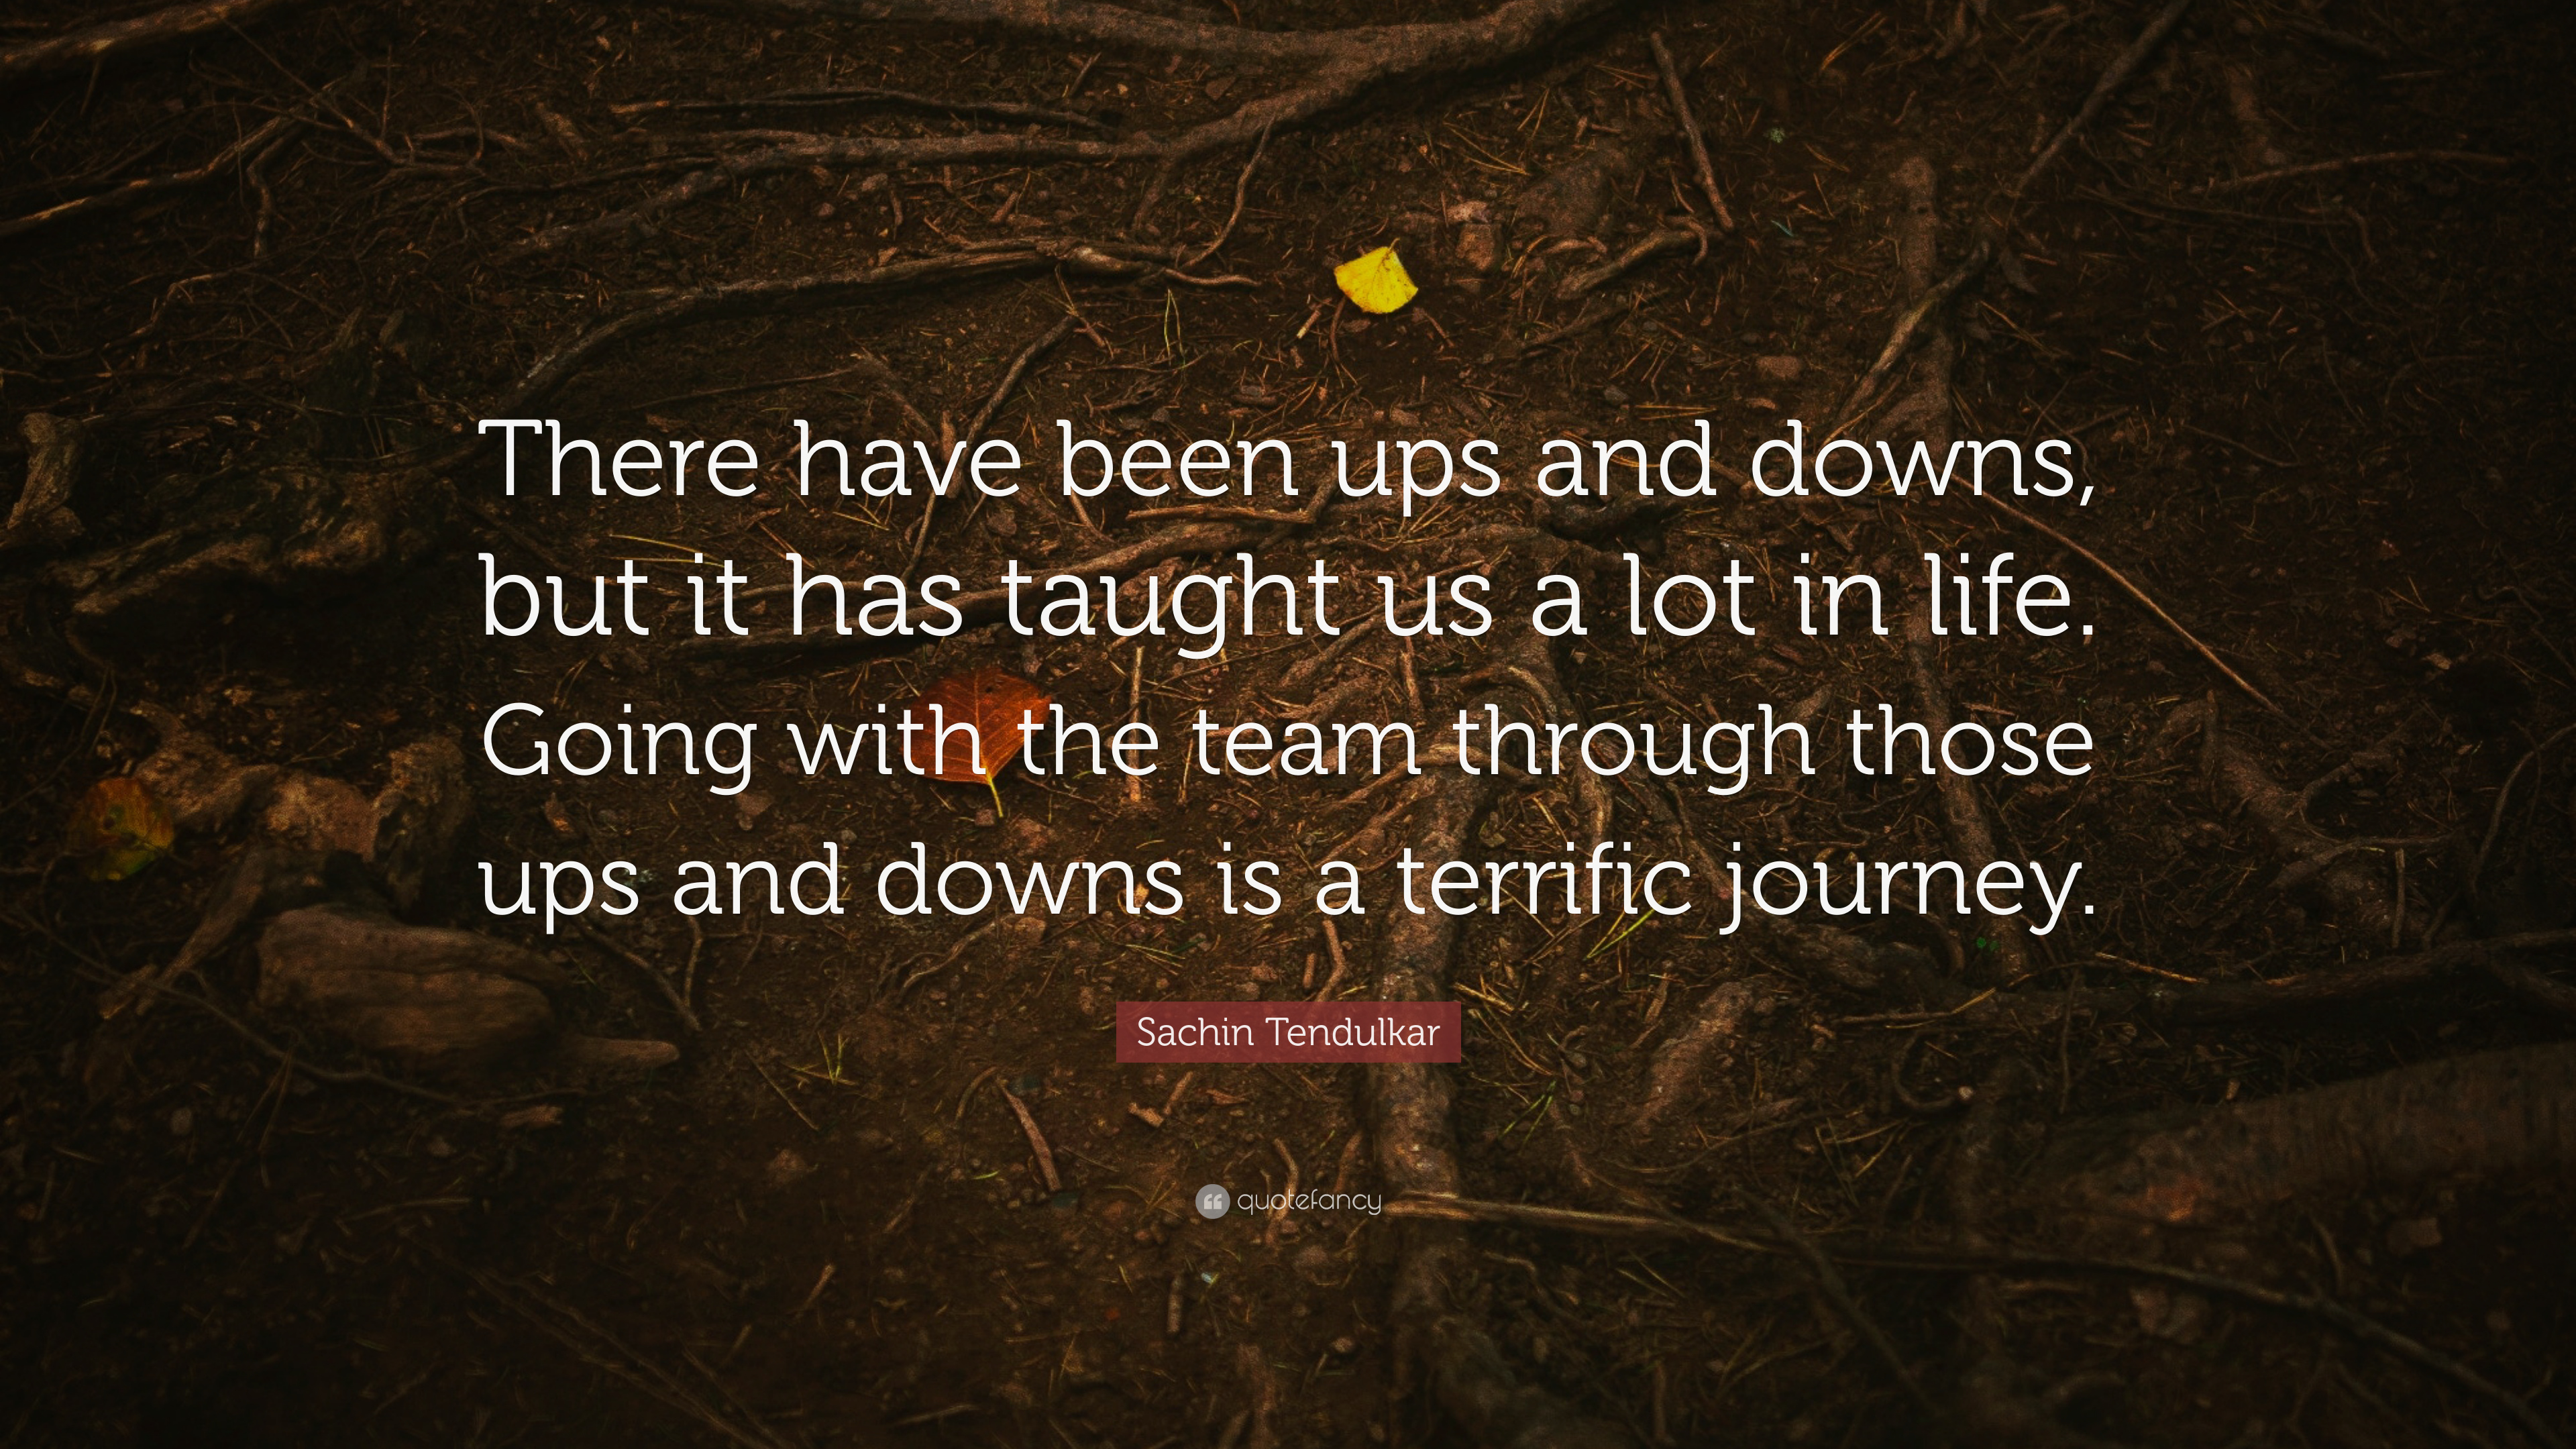 Sachin Tendulkar Quote There Have Been Ups And Downs But It Has Taught Us A Lot In Life Going With The Team Through Those Ups And Downs Is A 7 Wallpapers Quotefancy